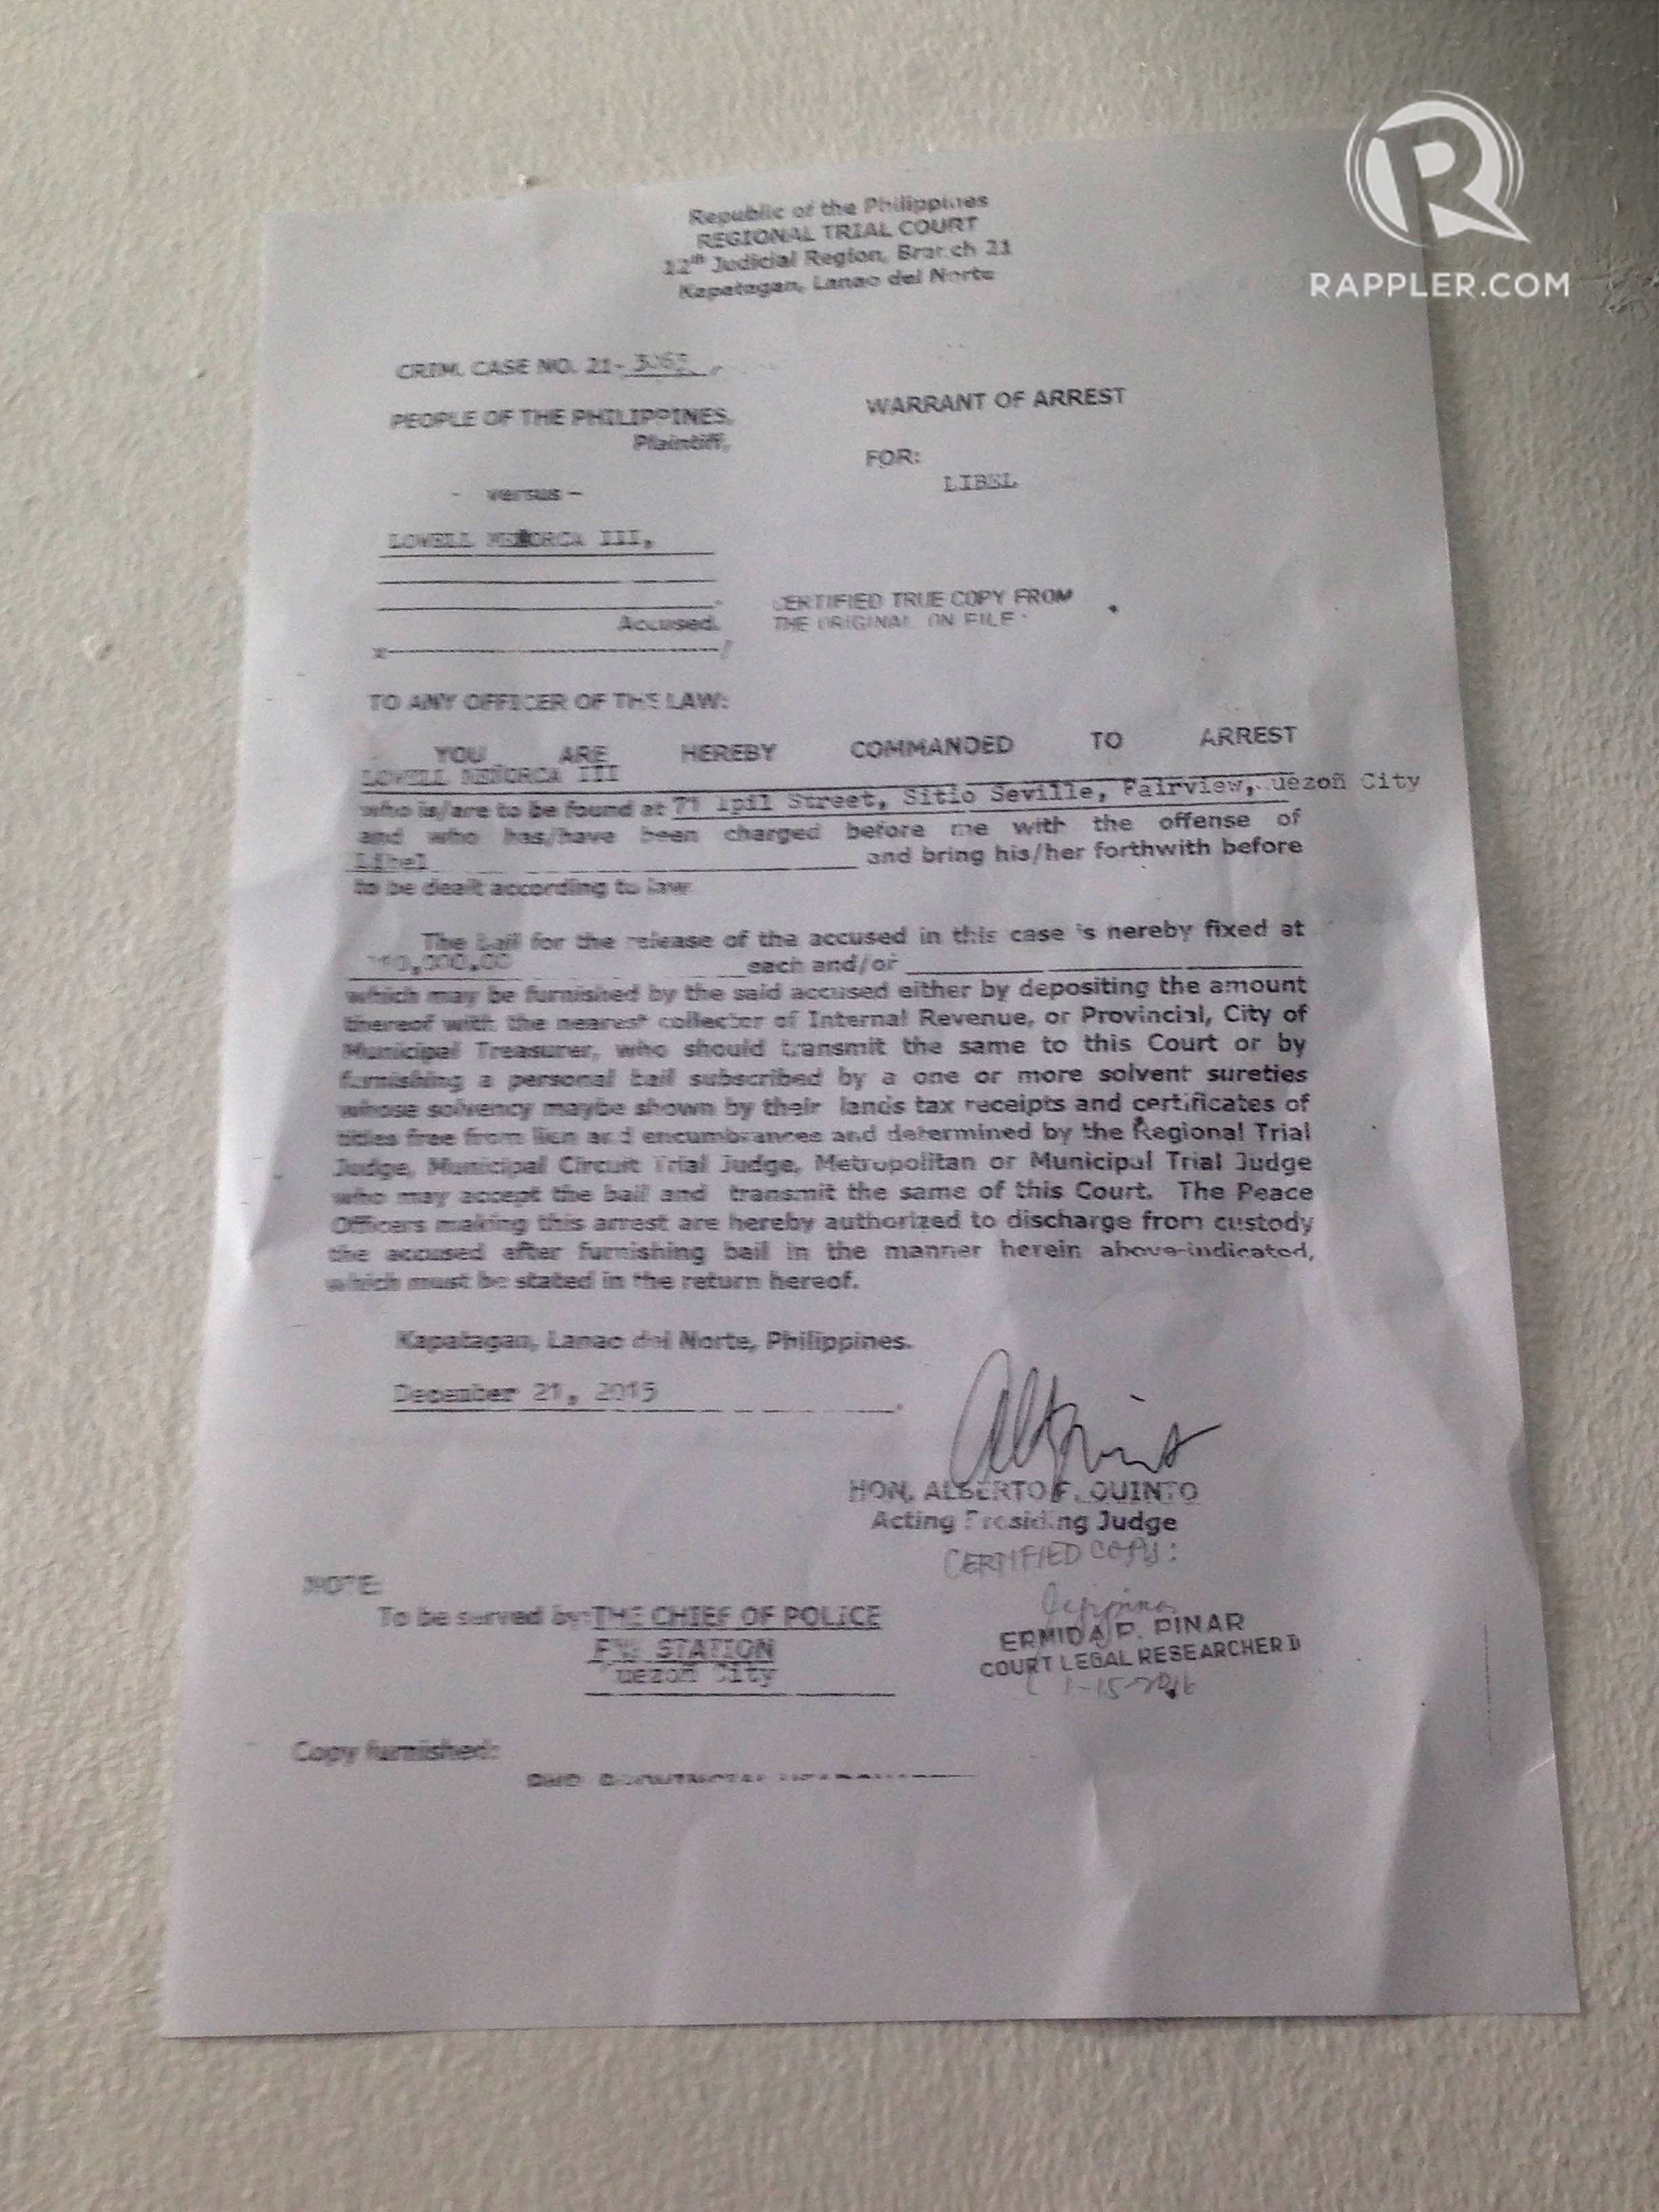 WARRANT OF ARREST. The warrant of arrest, dated December 21, 2015, issued by the Regional Trial Court in Kapatagan, Lanao del Norte. Photo by Katerina Francisco/Rappler